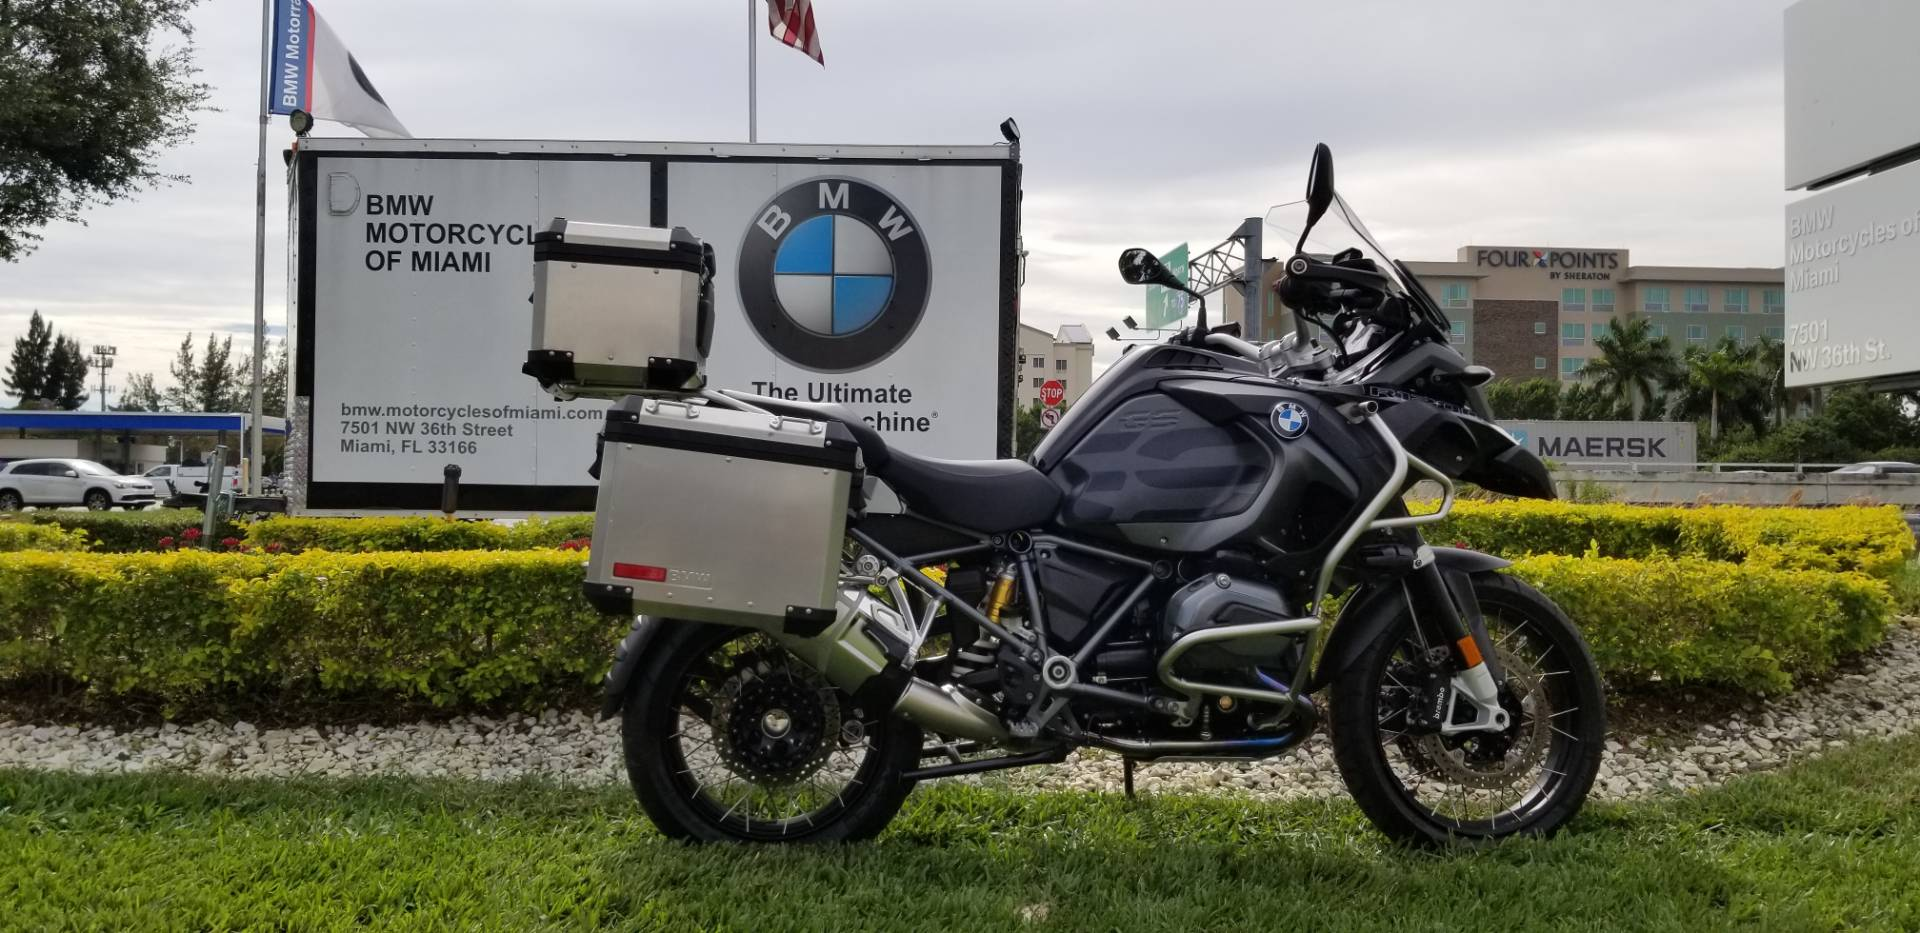 Used 2017 BMW R 1200 GSA for sale, Pre-owned BMW R1200GSA for sale, BMW Motorcycle Adventure, used BMW Adventure triple black, BMW Motorcycles of Miami, Motorcycles of Miami, Motorcycles Miami, New Motorcycles, Used Motorcycles, pre-owned. #BMWMotorcyclesOfMiami #MotorcyclesOfMiami - Photo 17